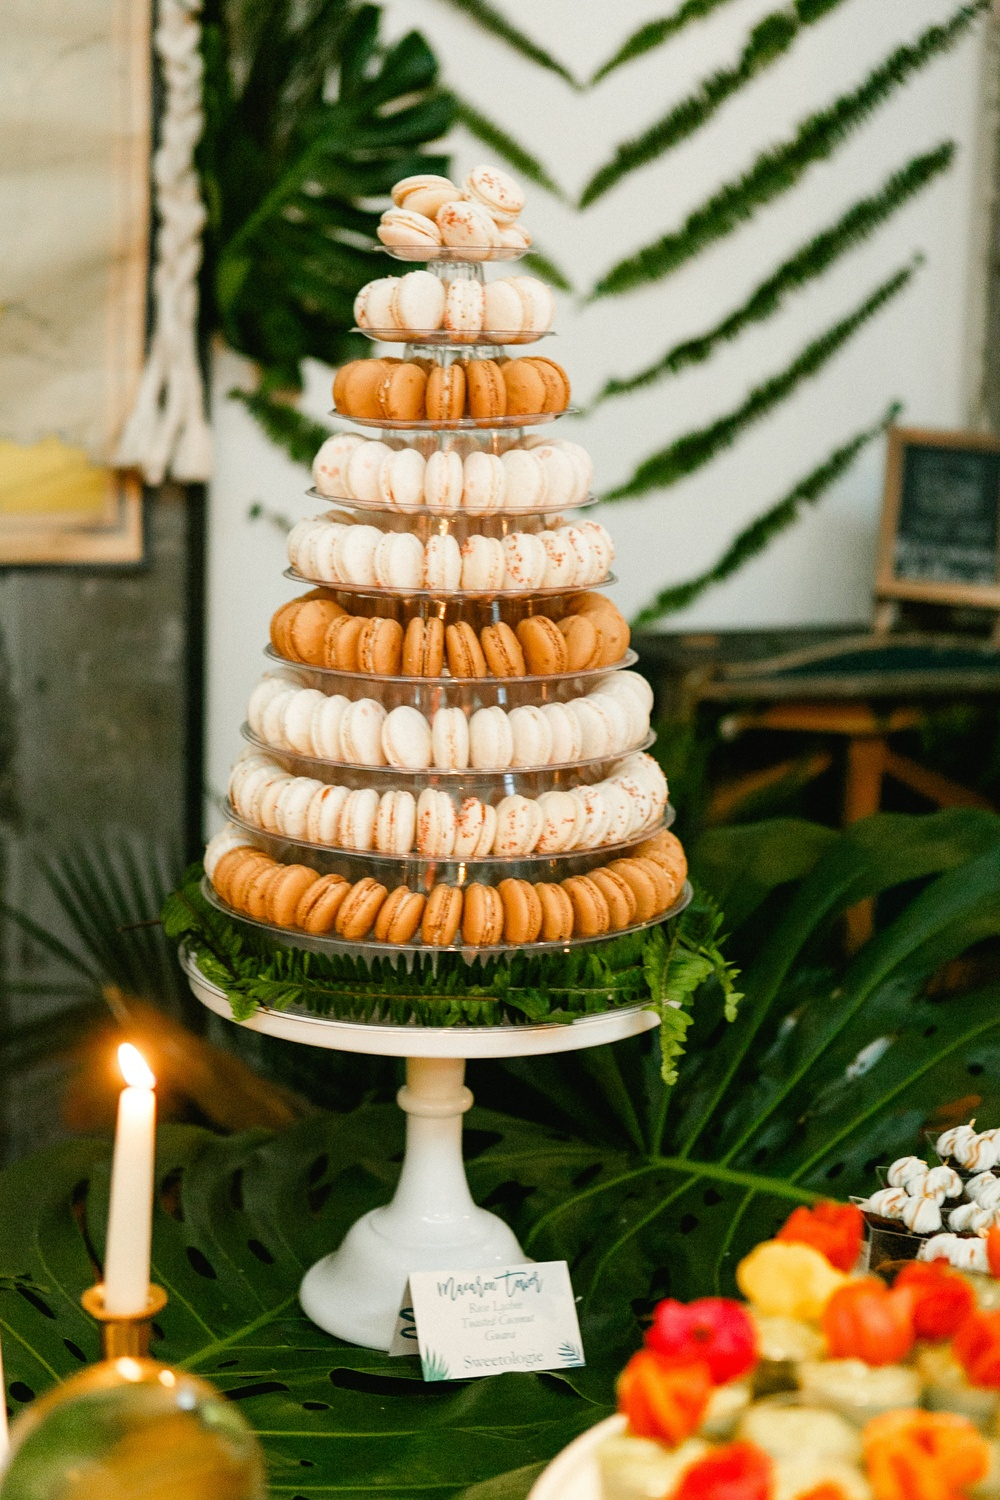 Macaron tower displaying 200 mini macarons